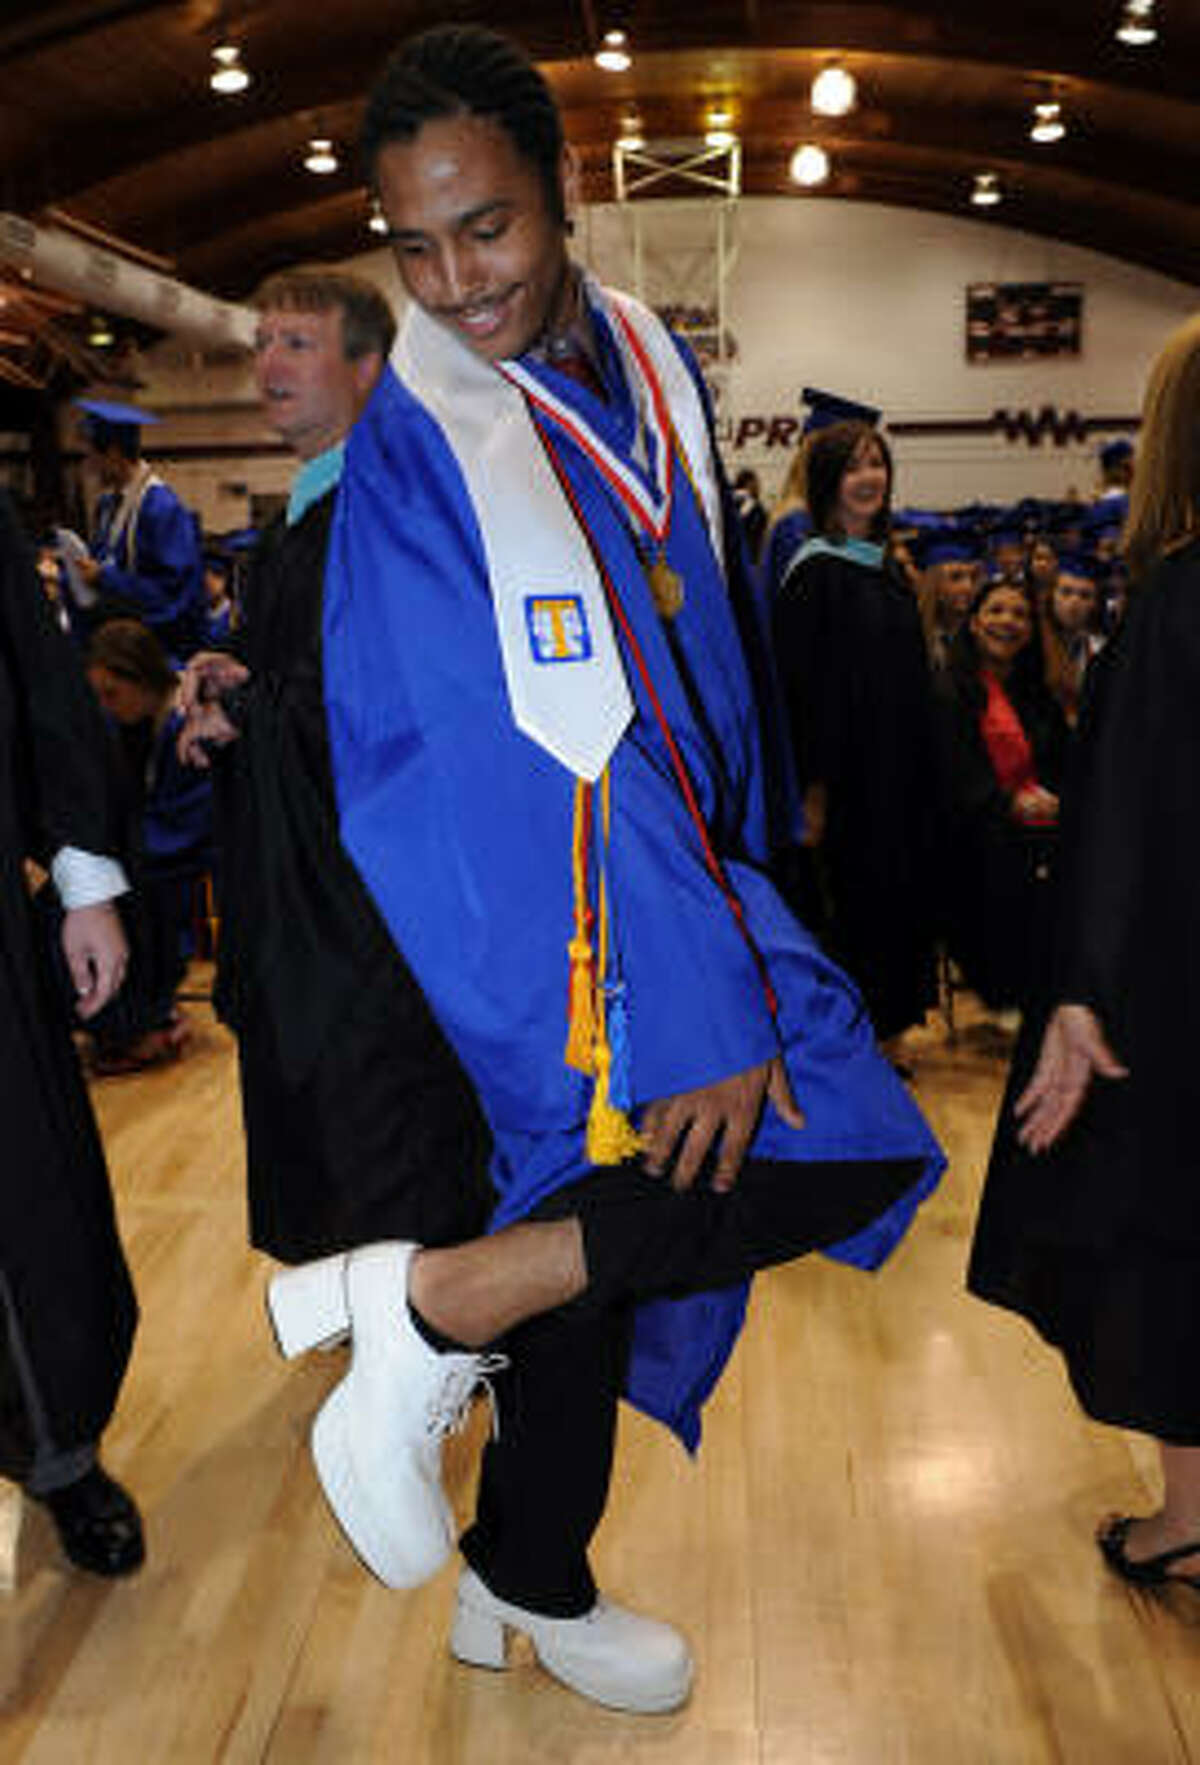 Trevor Anderson shows off his platform shoes before the ceremony.